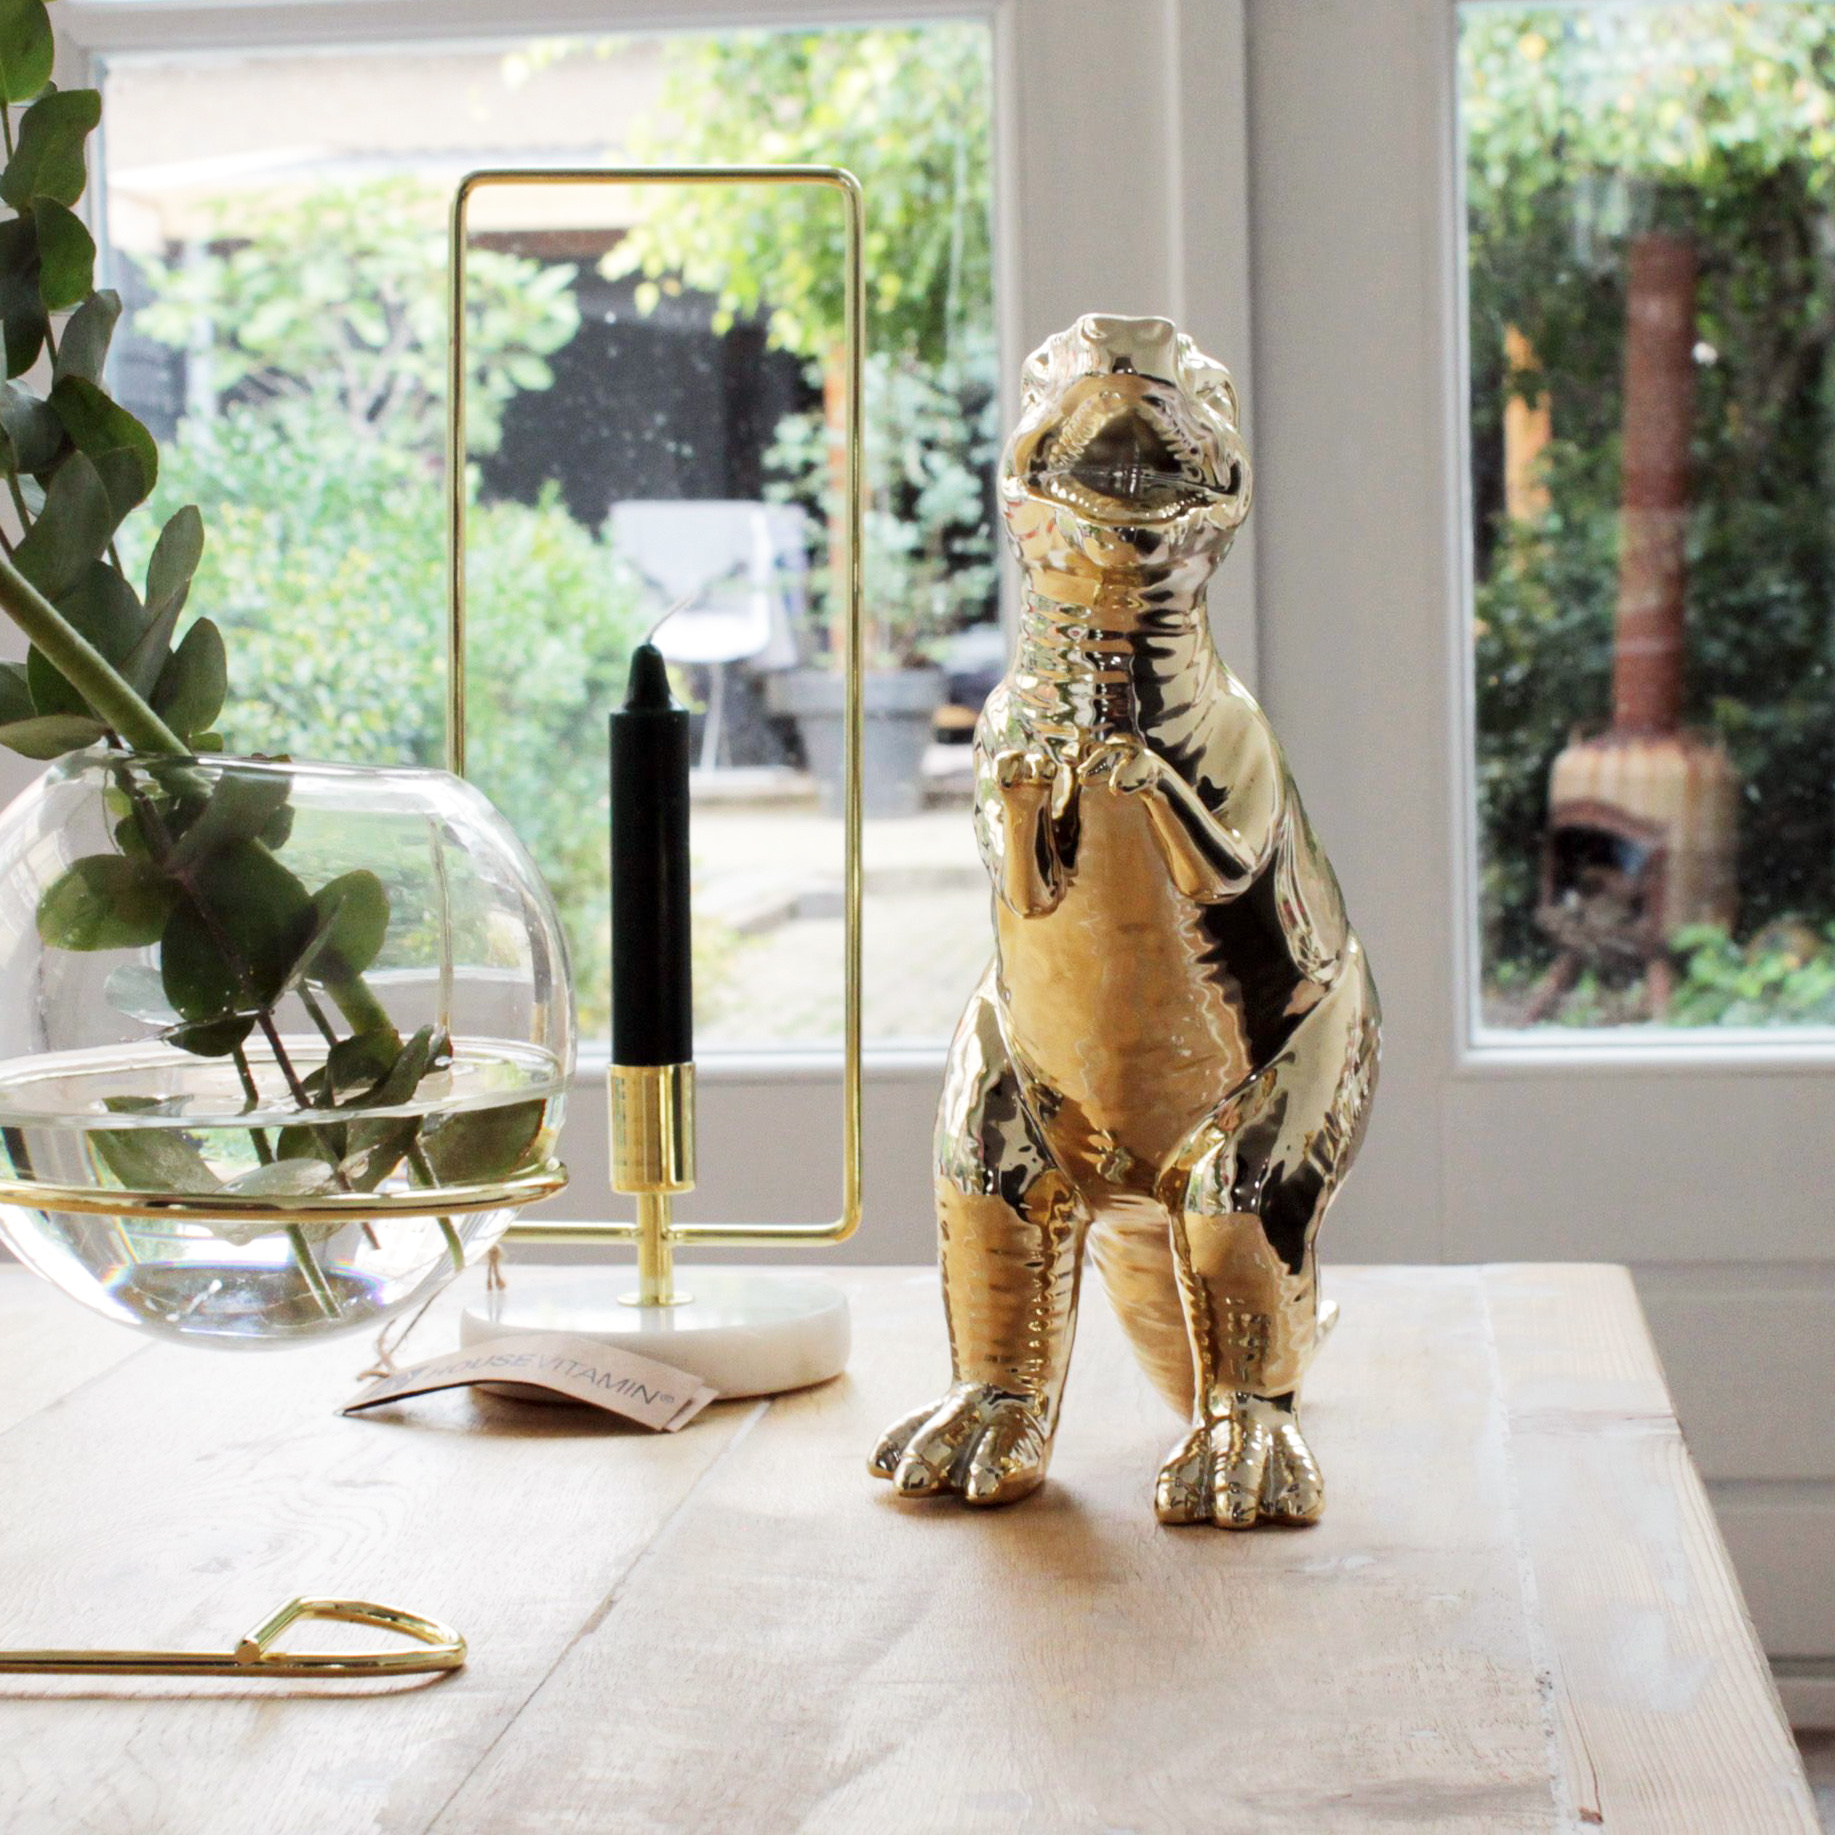 Gold T-rex dino planter